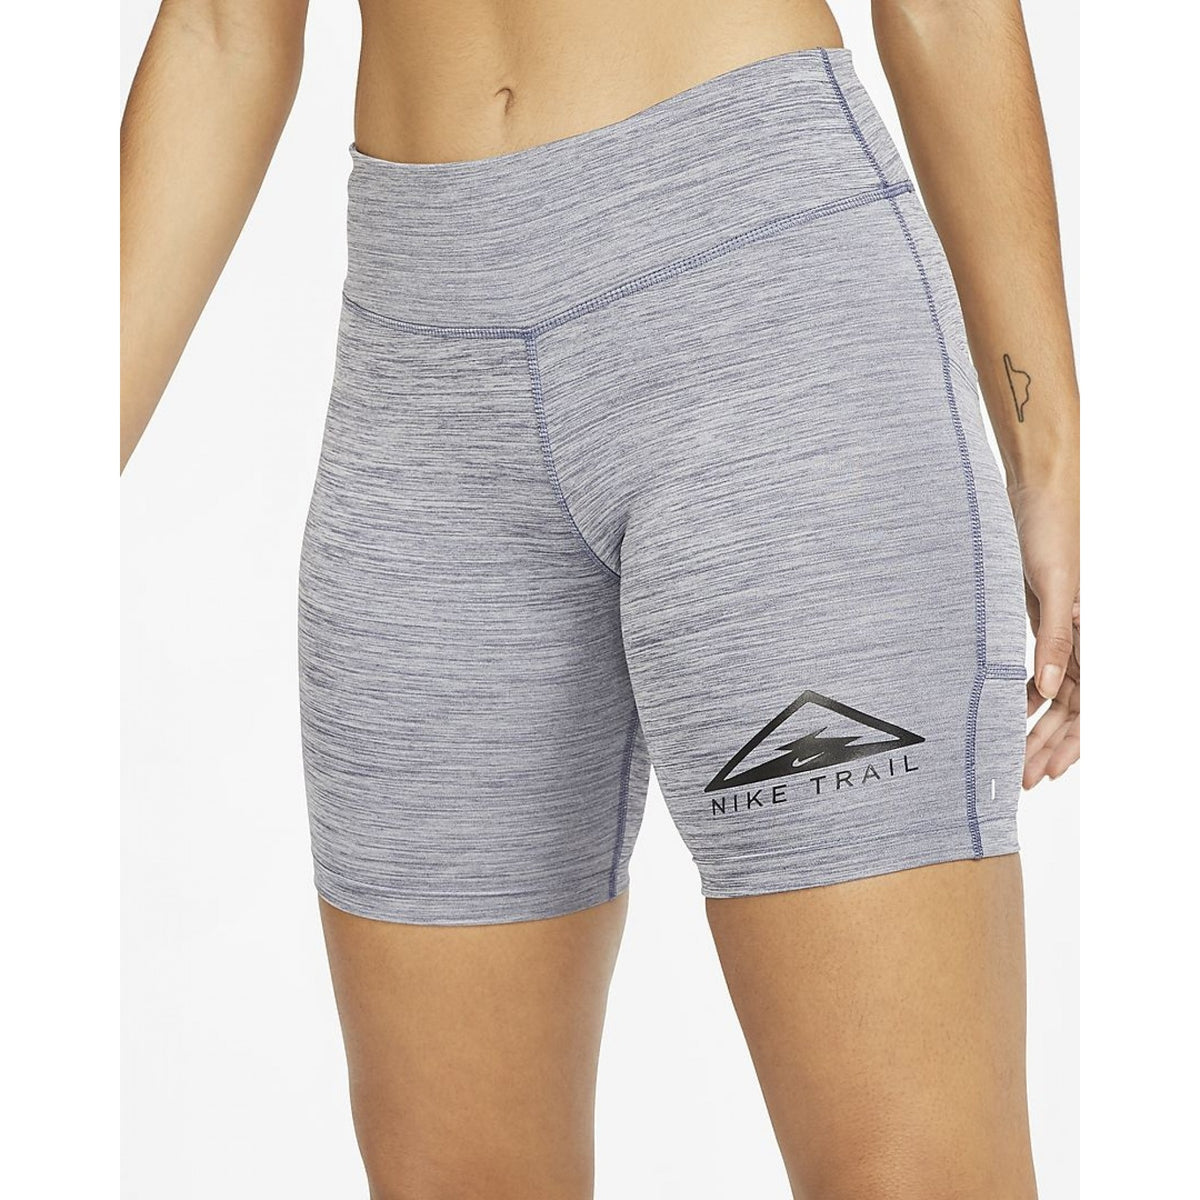 Nike Womens Fast Trail 7 Inch Shorts